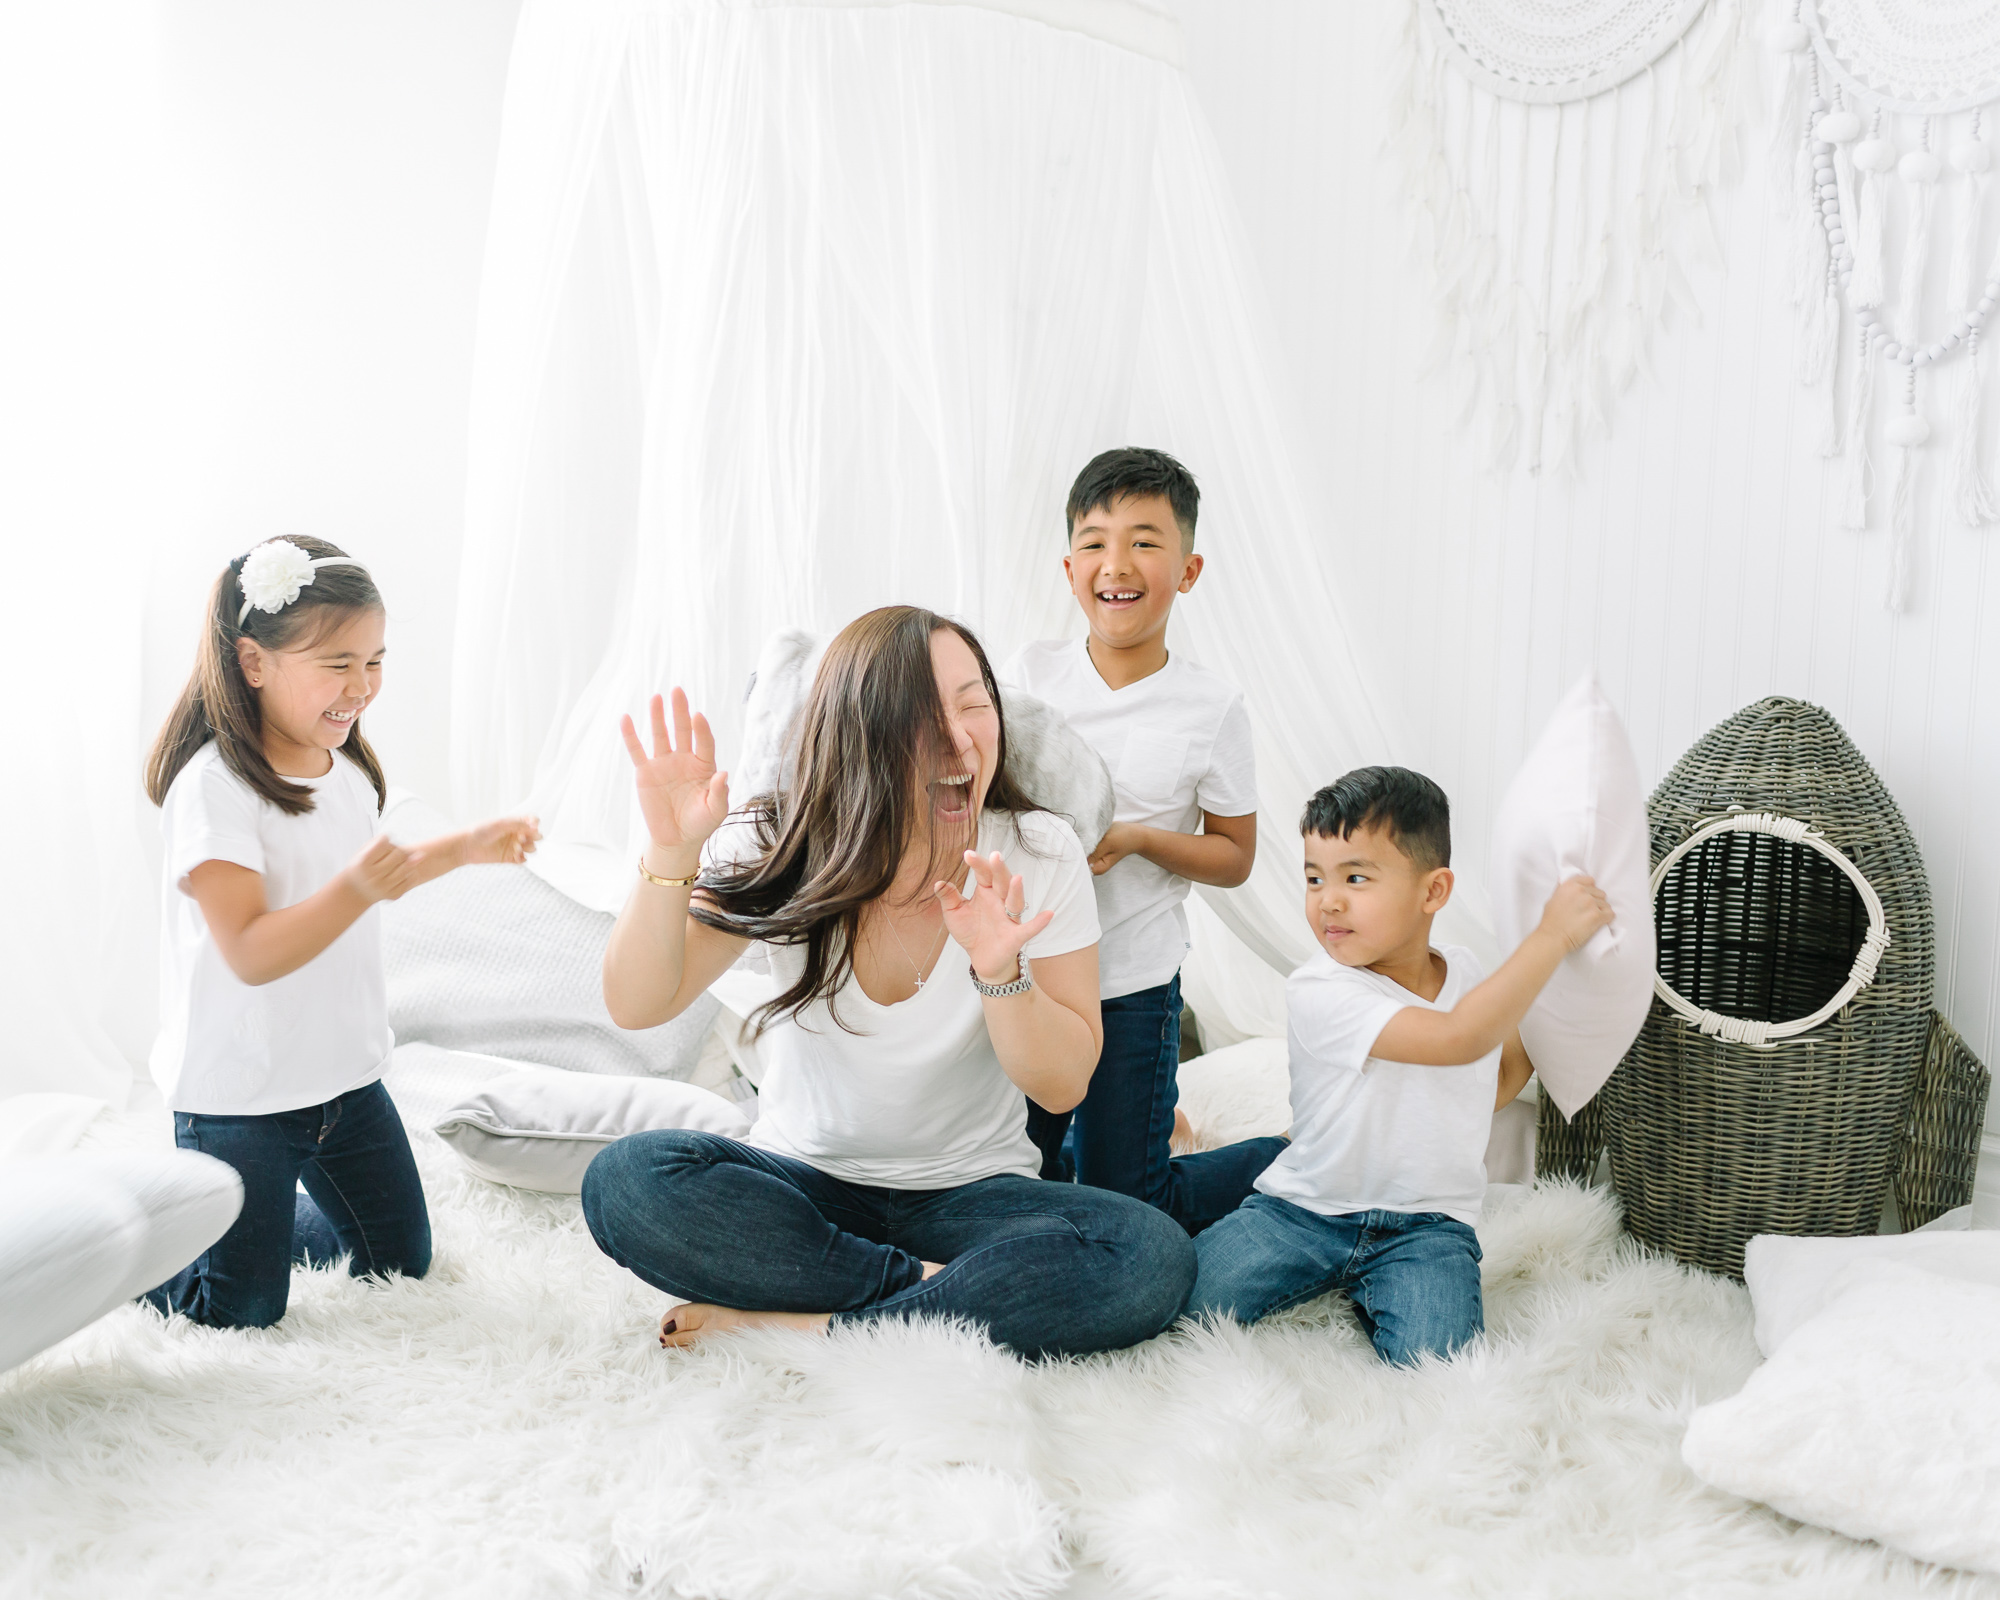 Family photo of a pillow fight with a mother and her kids.